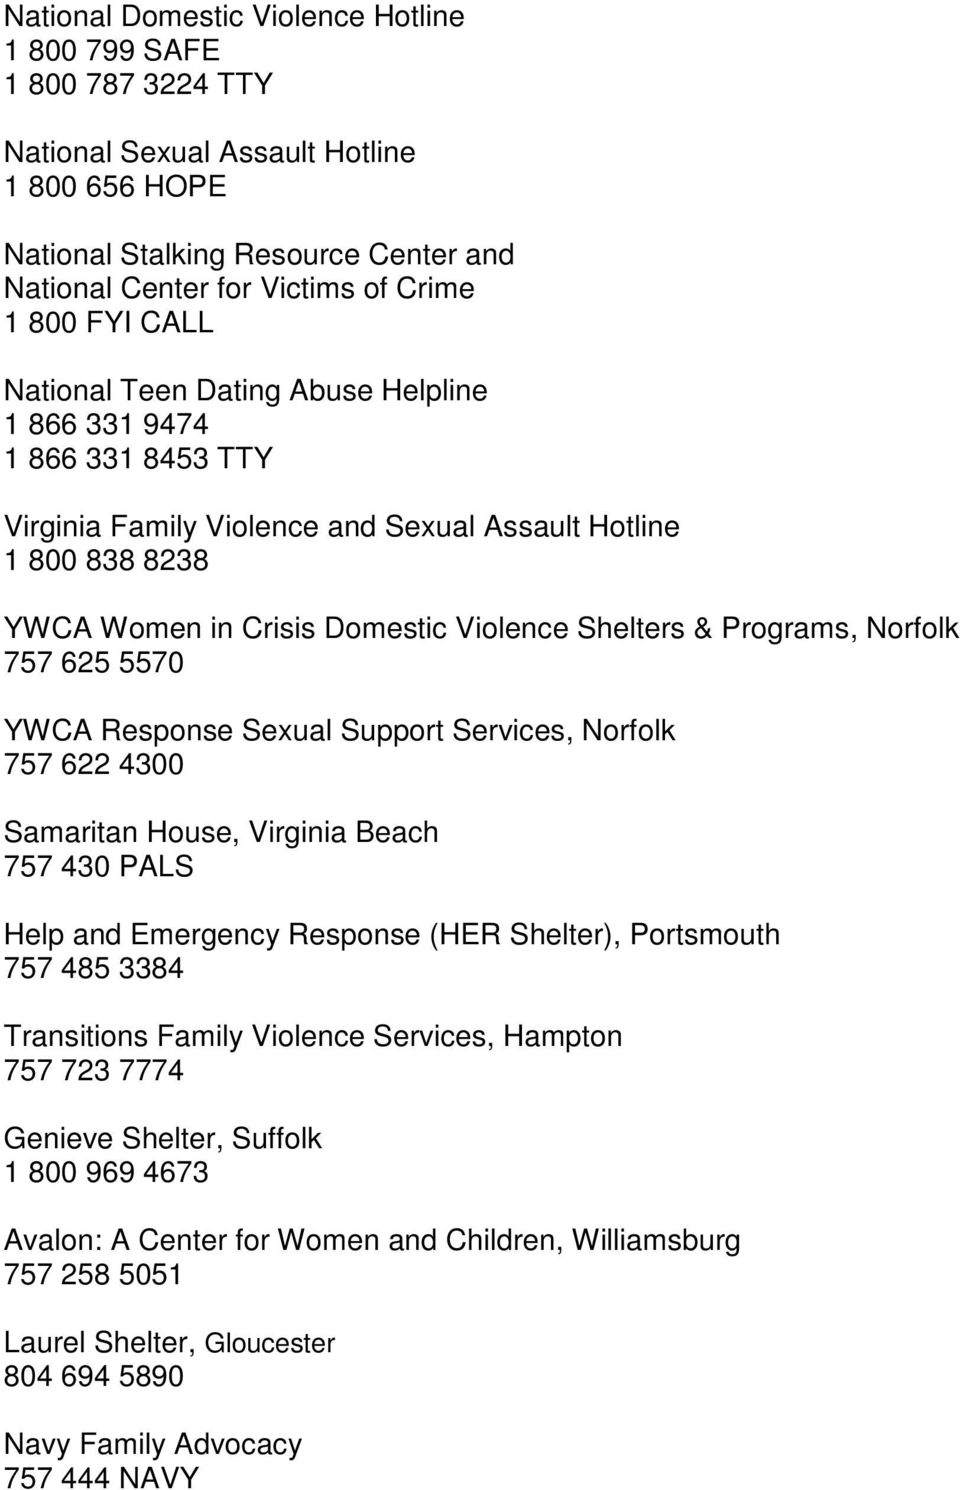 Programs, Norfolk 757 625 5570 YWCA Response Sexual Support Services, Norfolk 757 622 4300 Samaritan House, Virginia Beach 757 430 PALS Help and Emergency Response (HER Shelter), Portsmouth 757 485